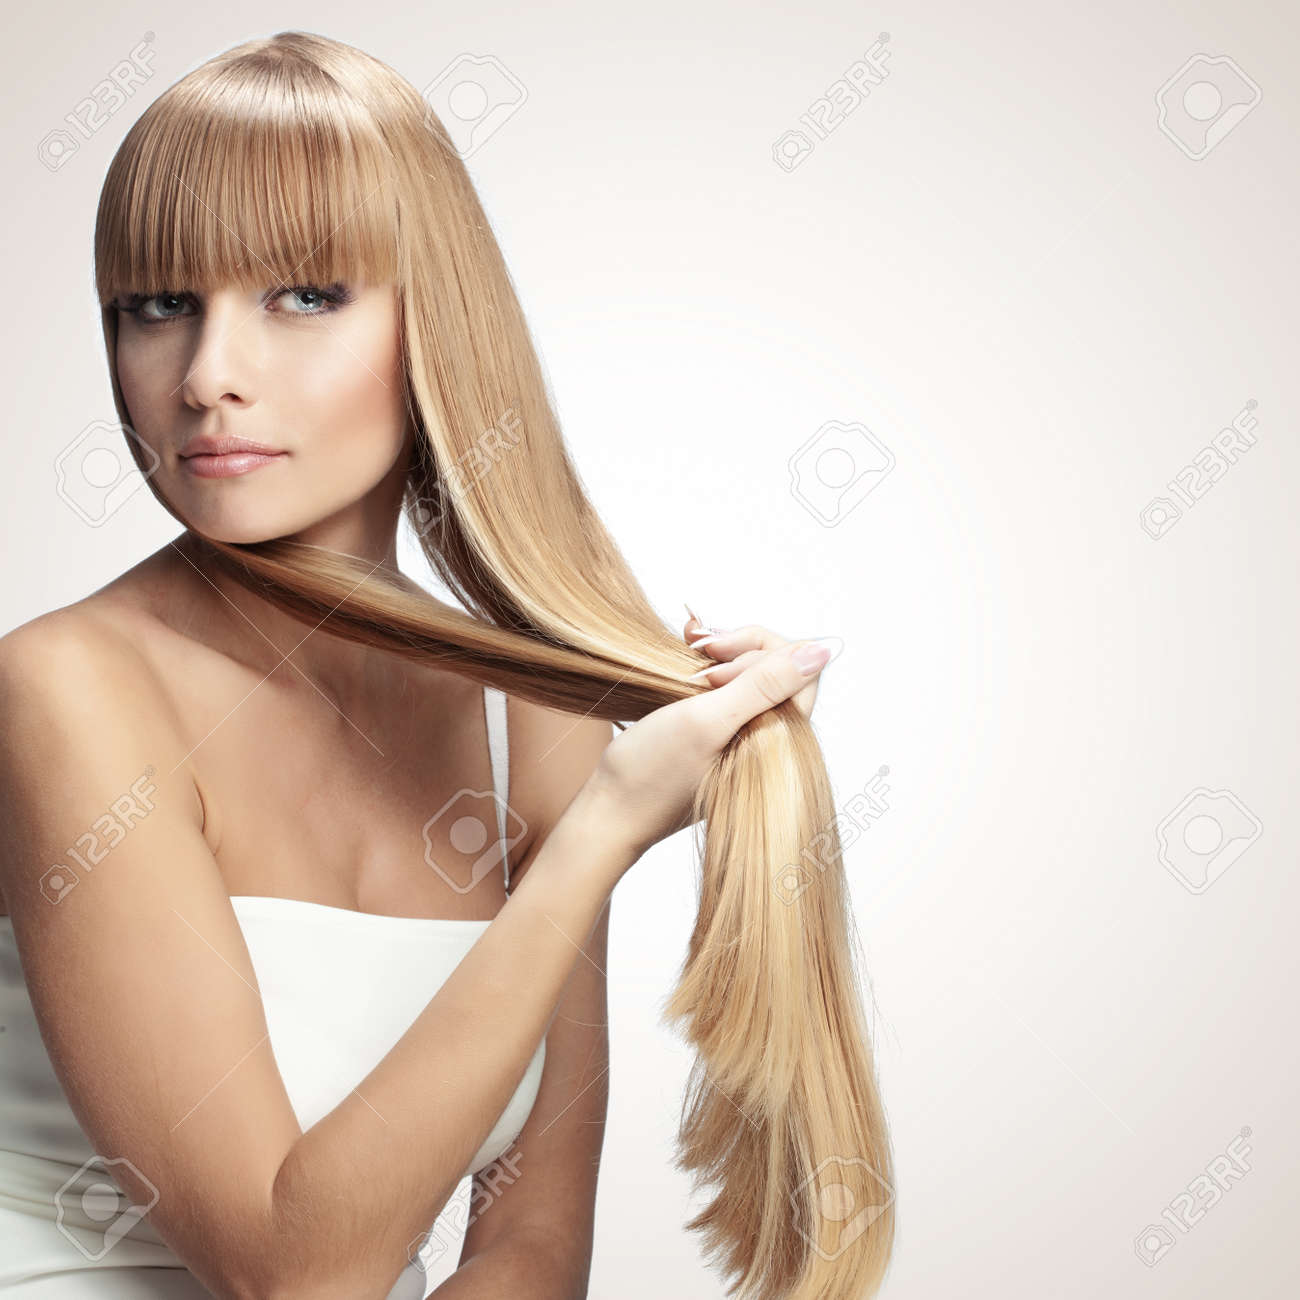 Portrait of beautiful girl with perfect long shiny blond hair studio shot Stock Photo - 18062726